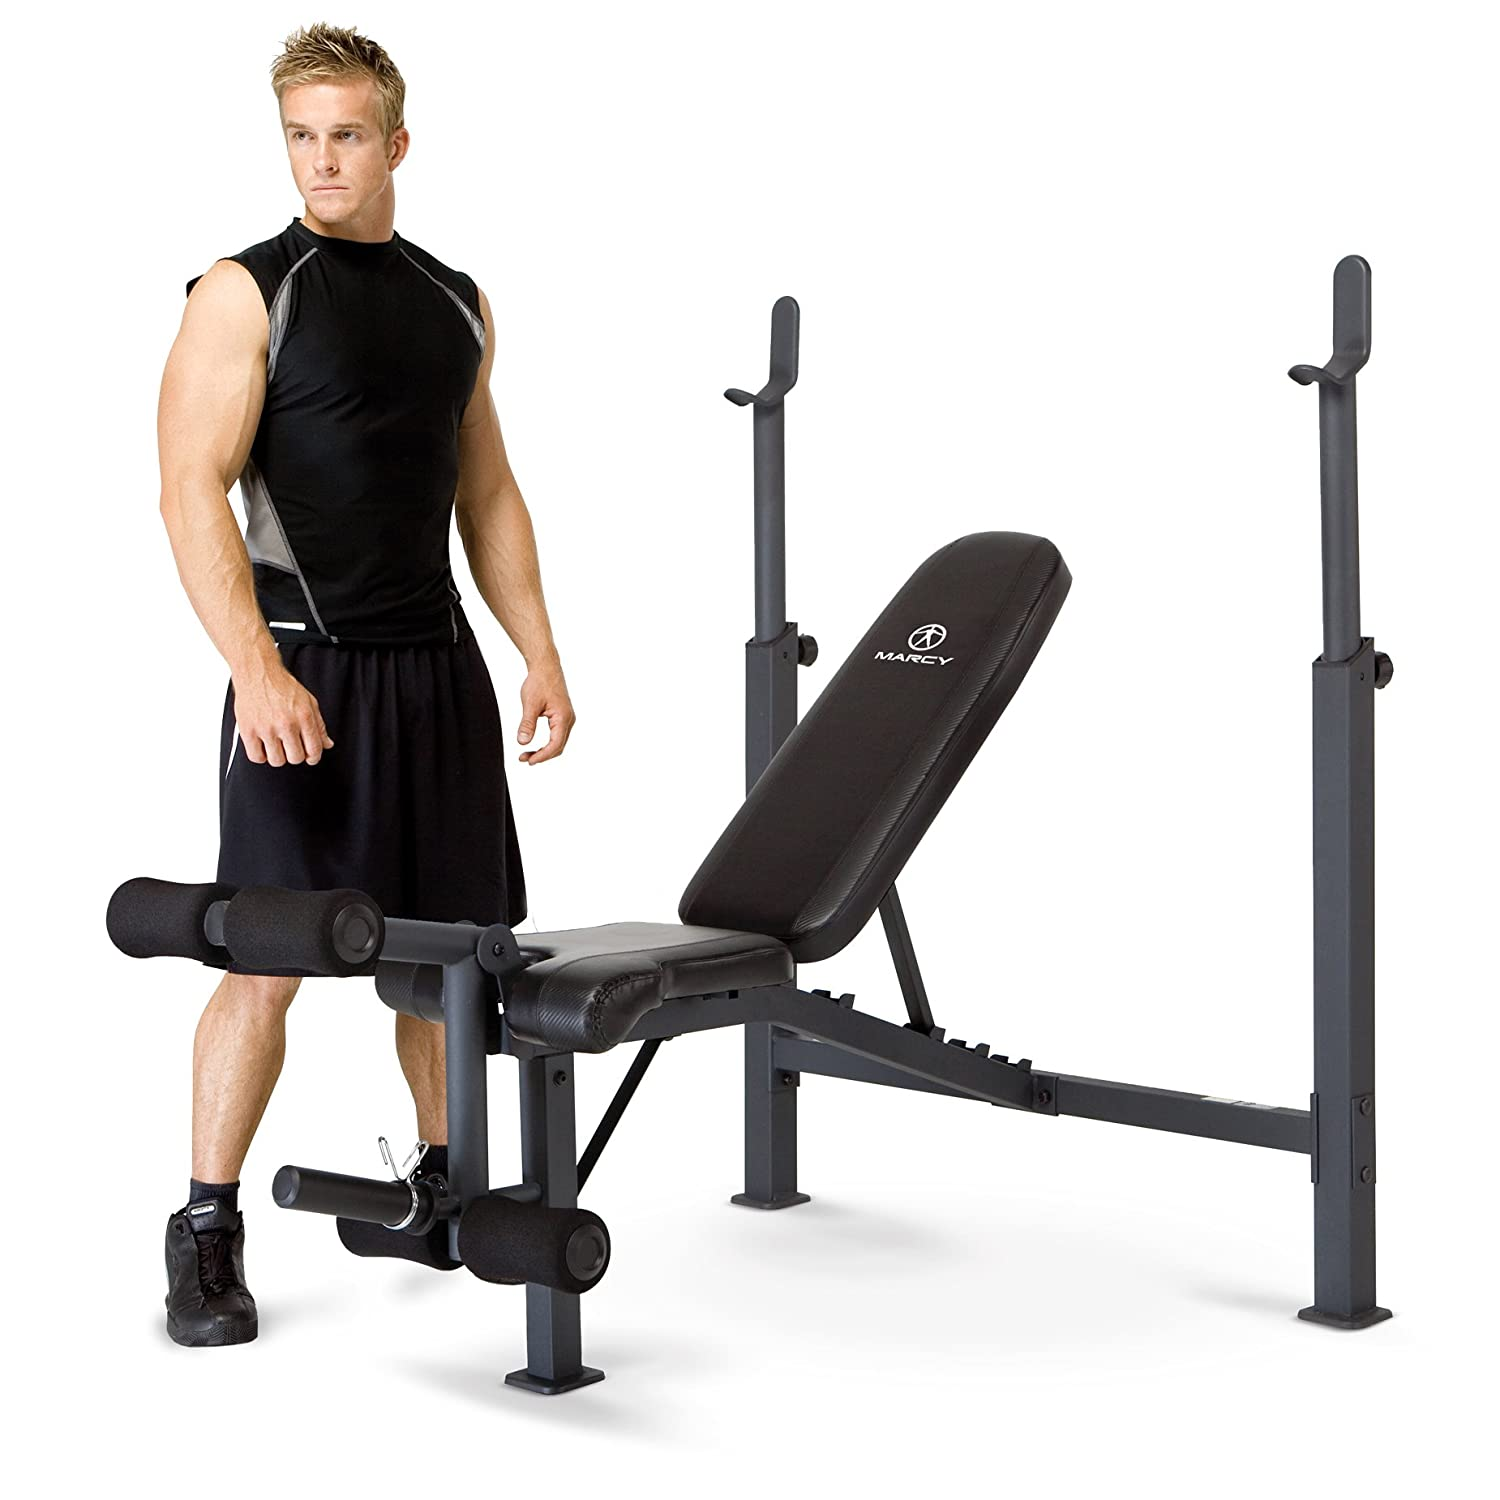 Marcy Competitor Adjustable Olympic Weight Bench with Leg Developer for Weight Lifting and Strength Training CB-729 Impex CB729